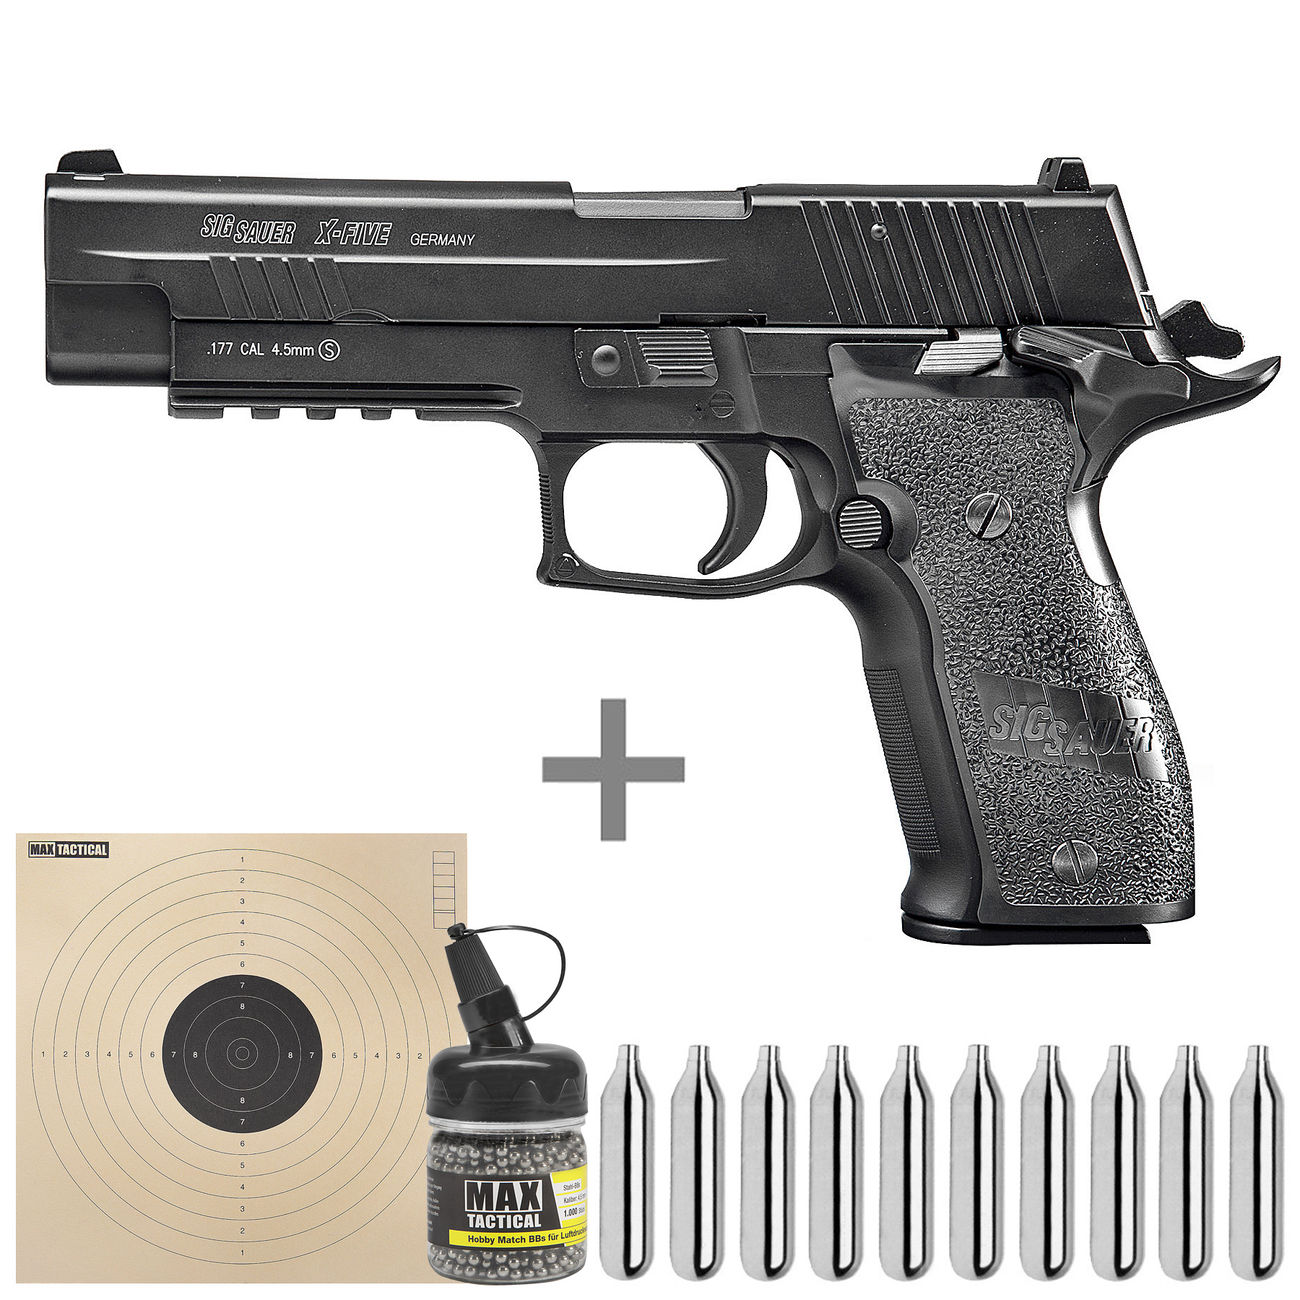 cybergun sig sauer p226 x five vollmetall co2 luftpistole 4 5mm bb starterset g nstig kaufen. Black Bedroom Furniture Sets. Home Design Ideas